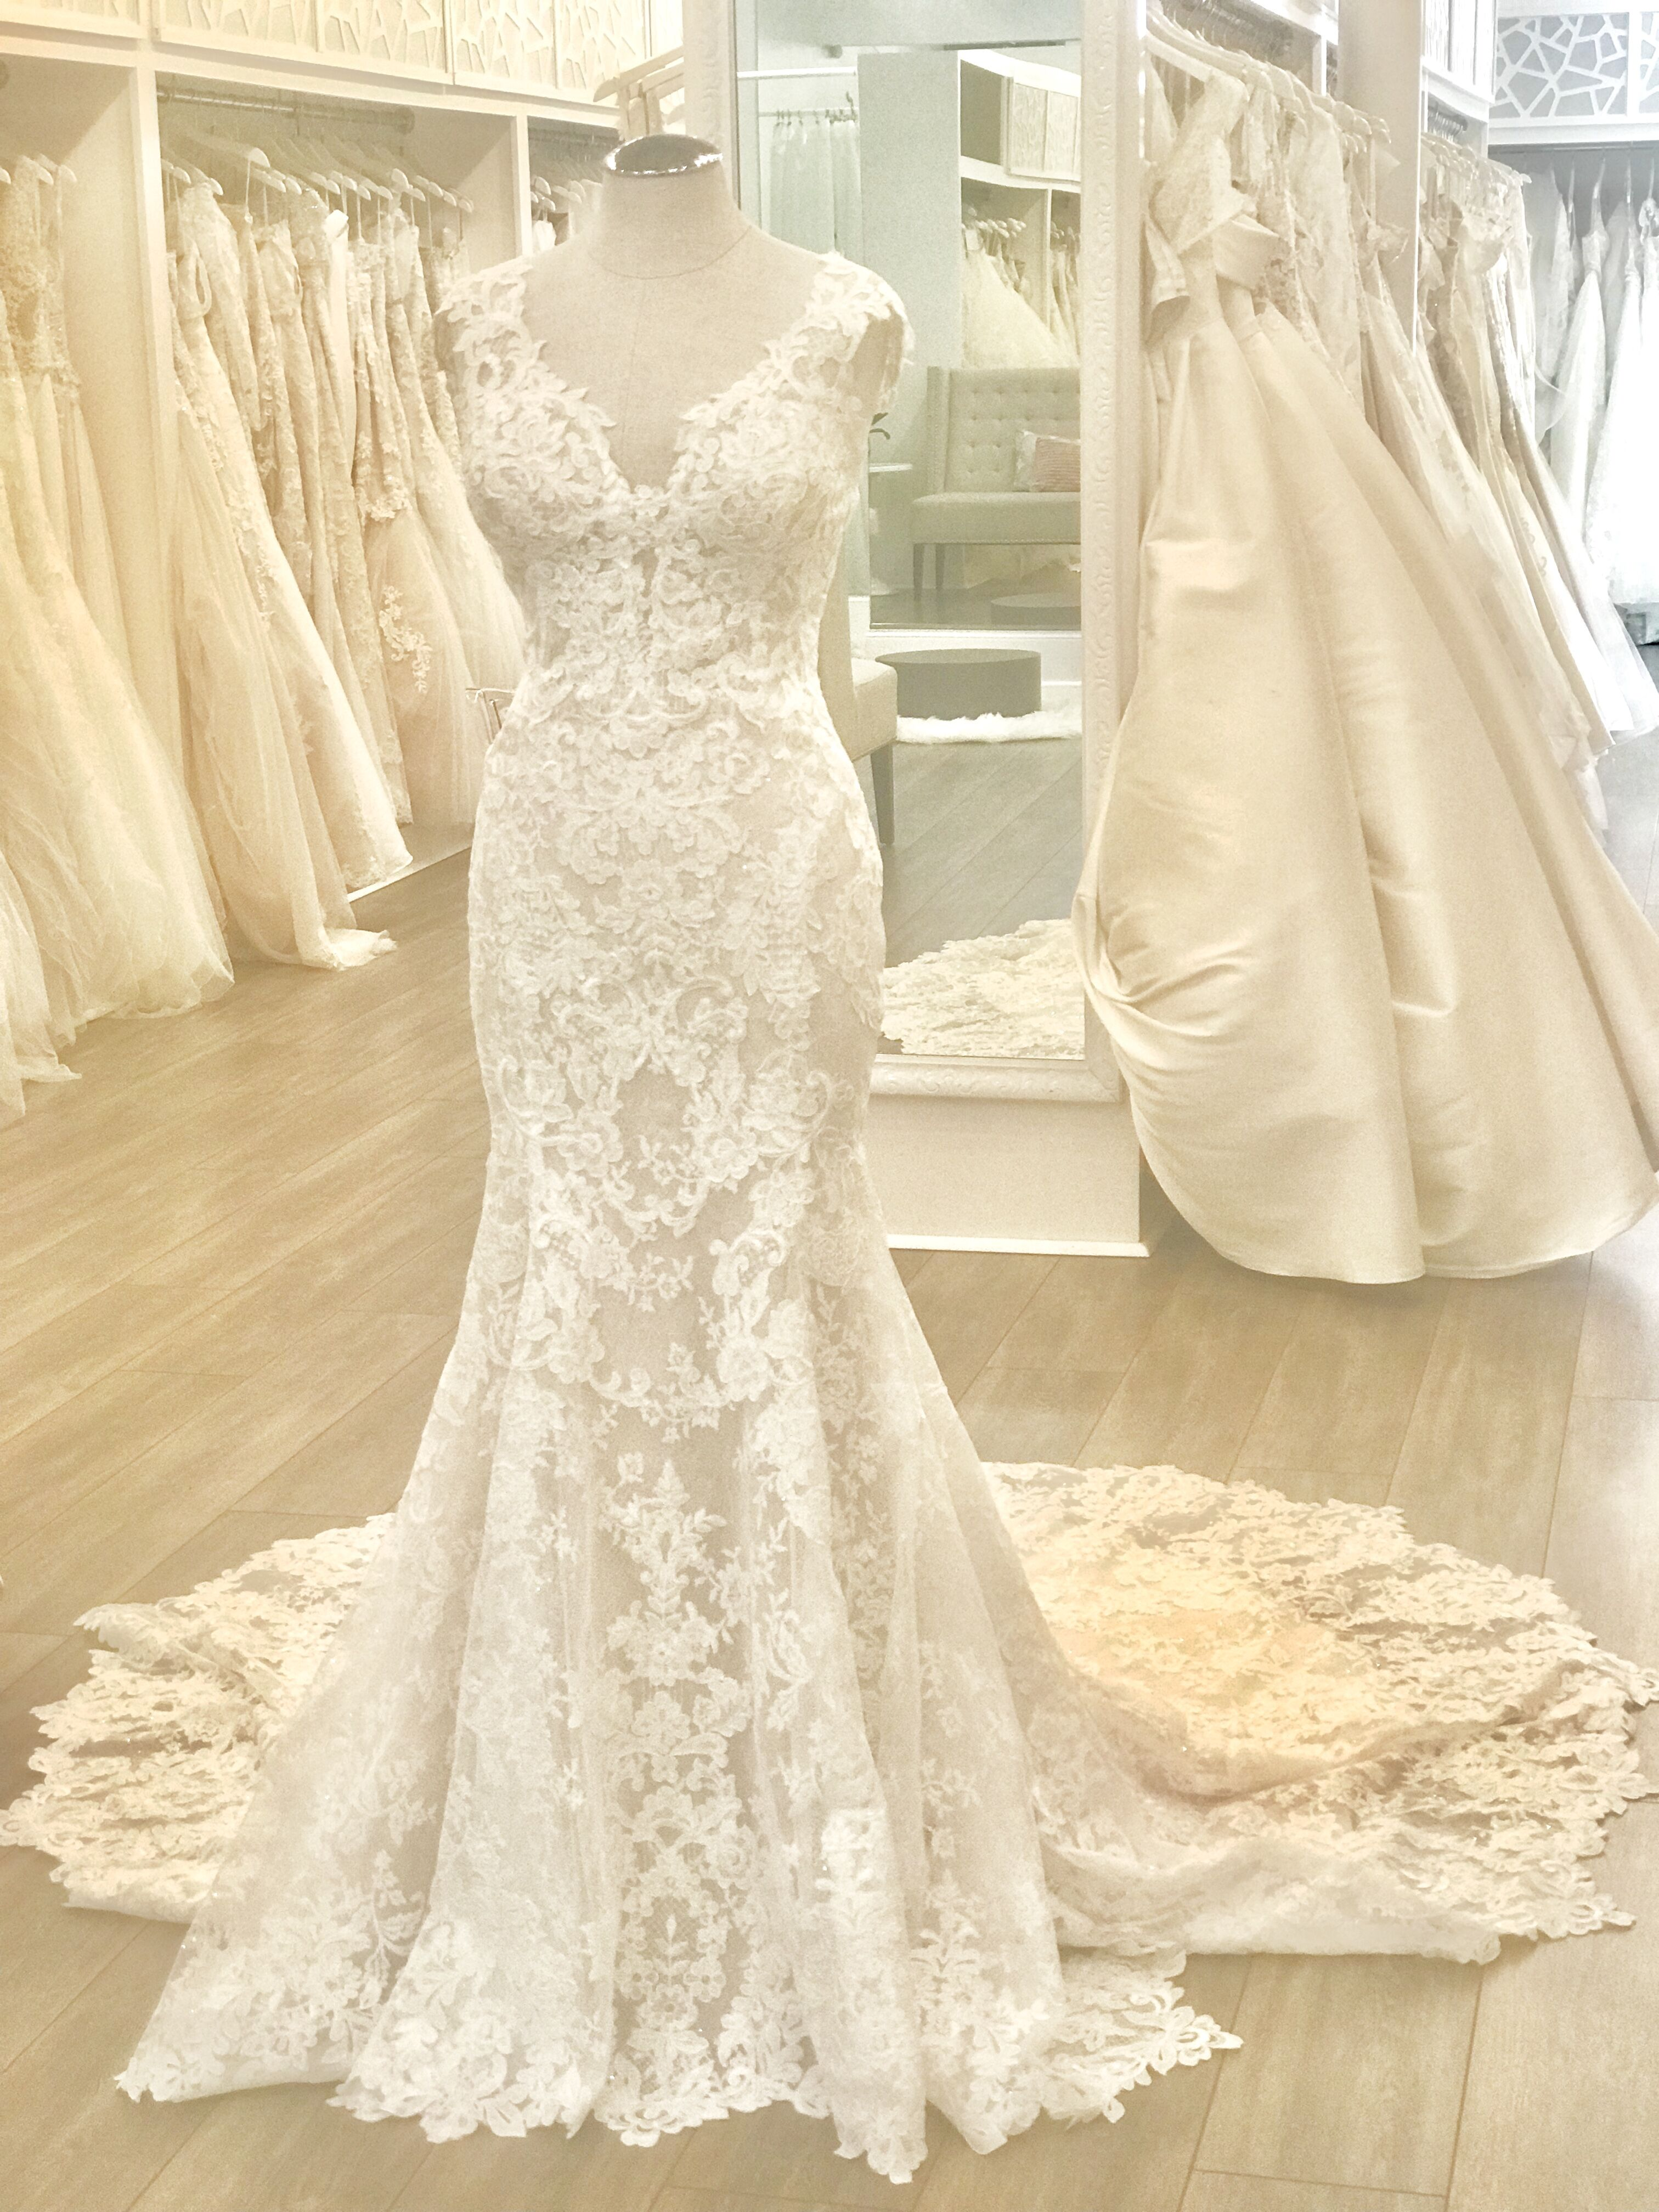 7d3c623d7 Bridal Salons in Sugar Land, TX - The Knot